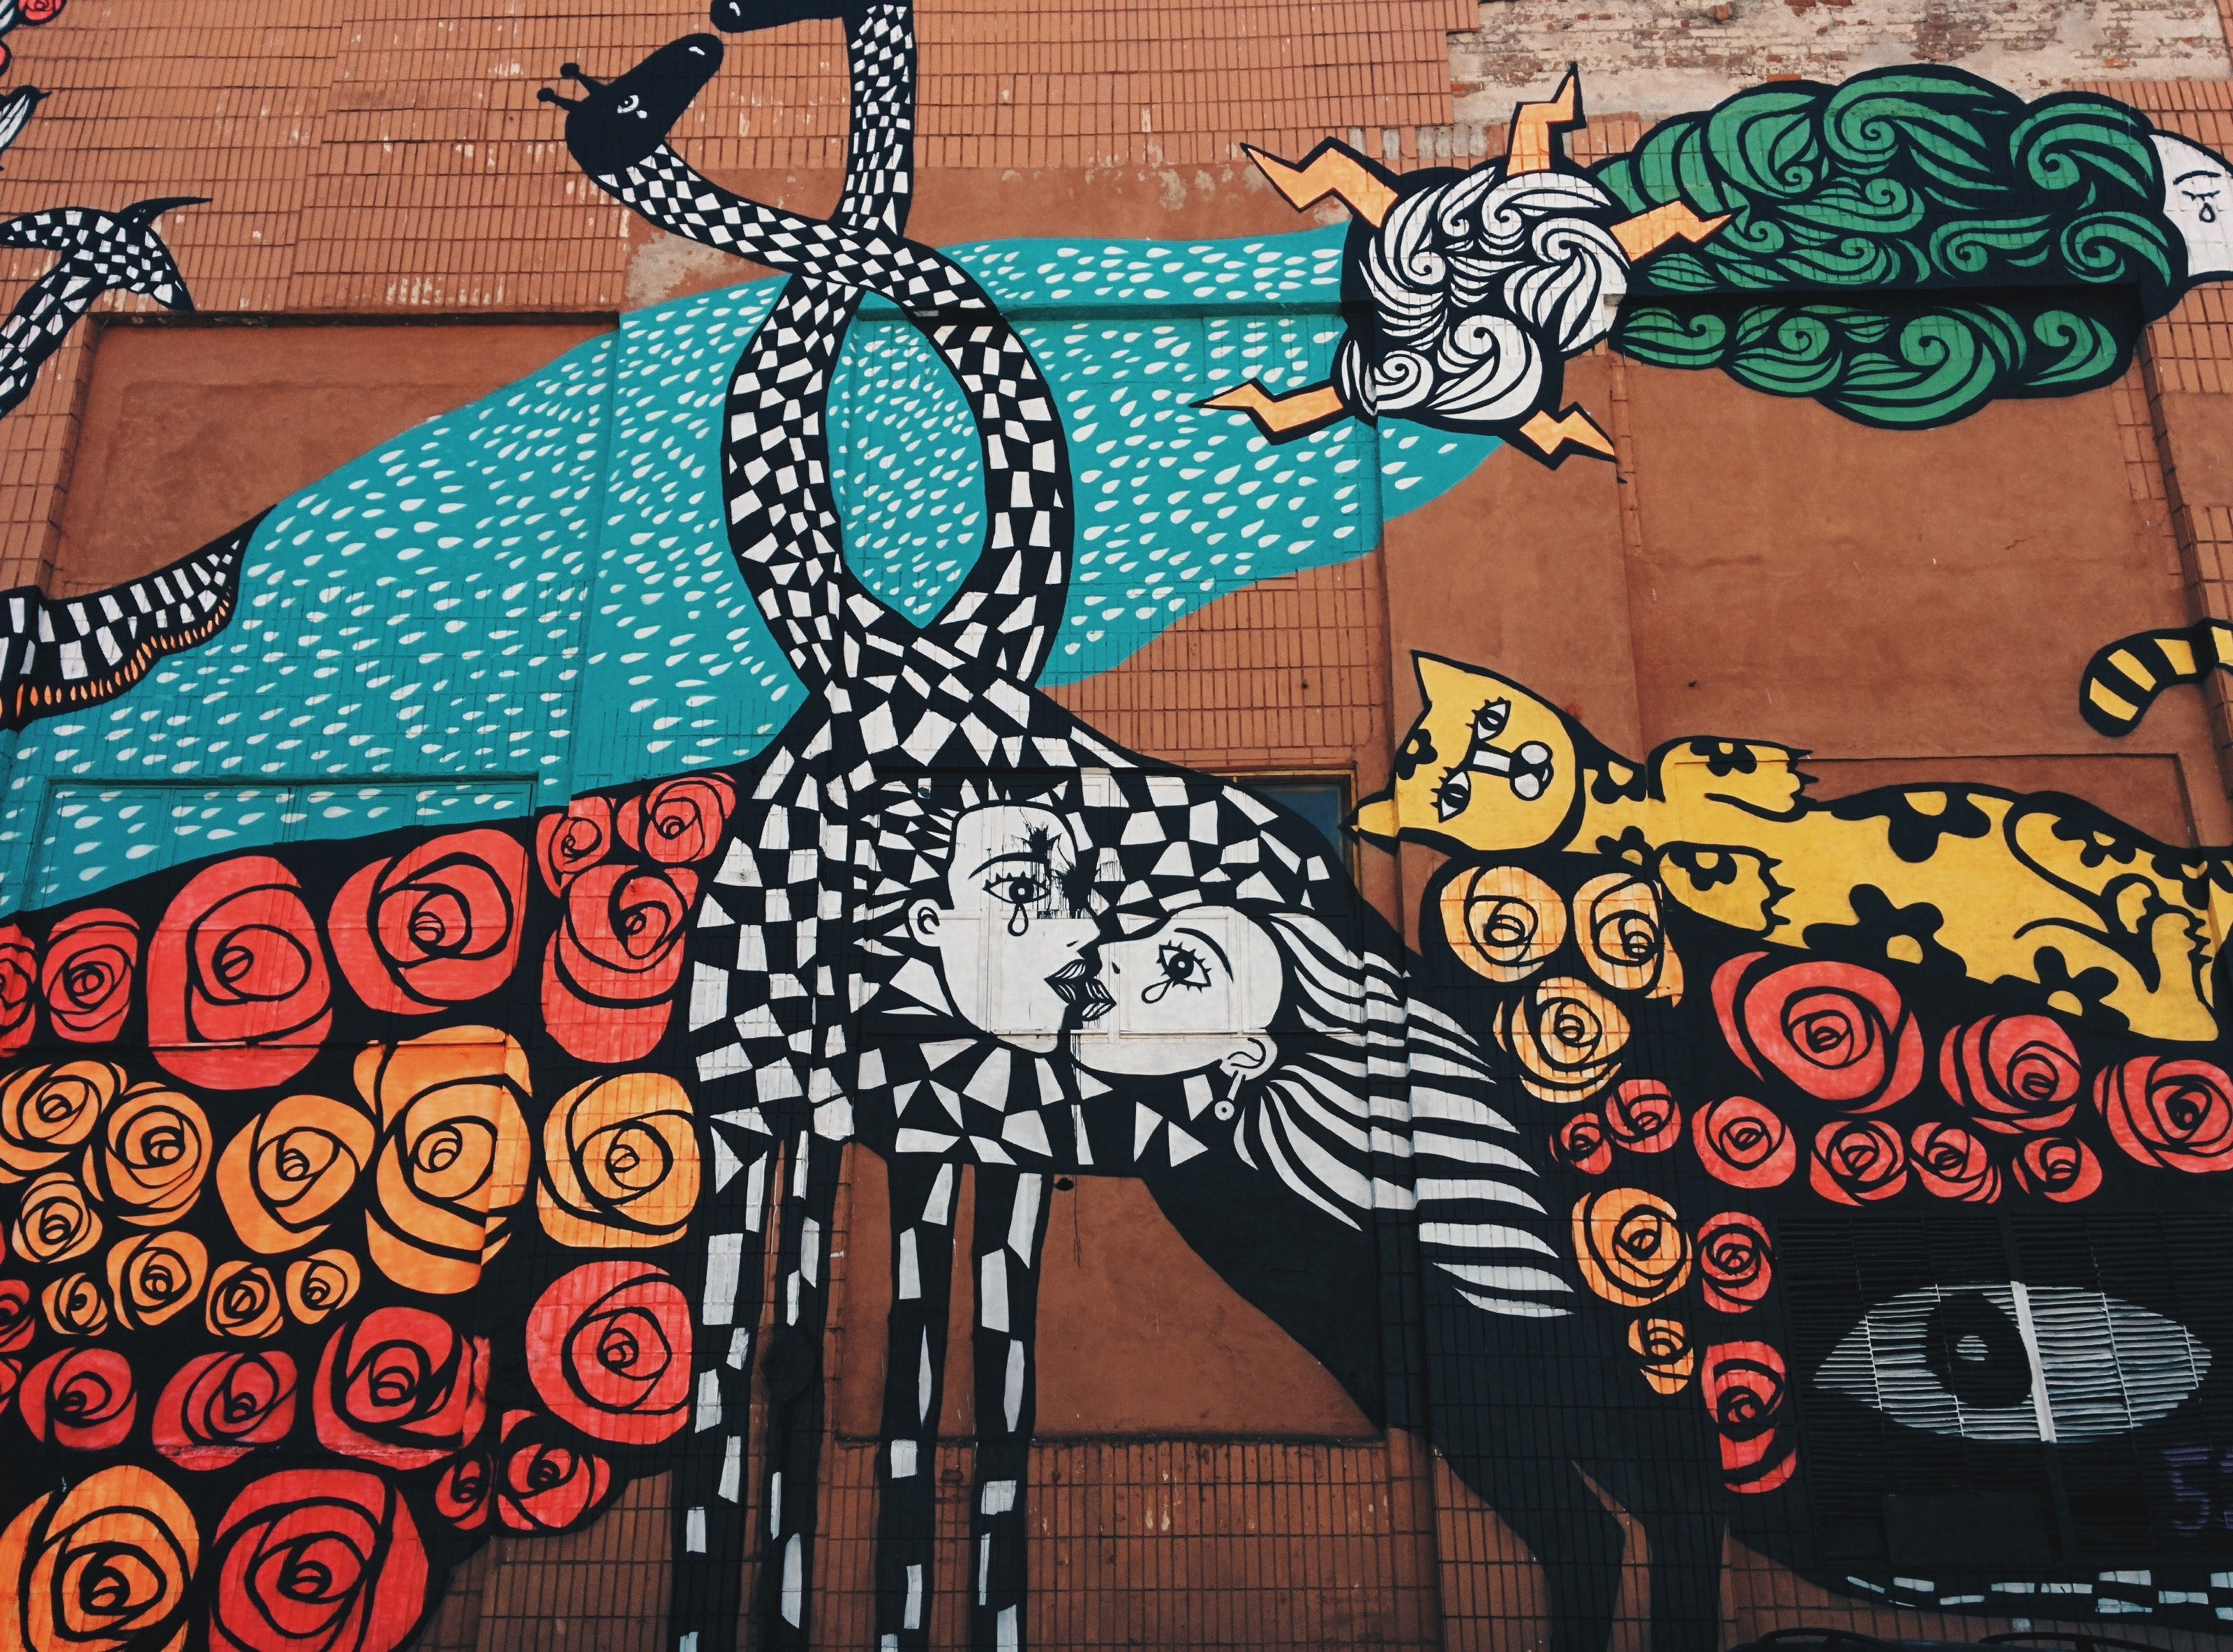 A wall painting of black and white checkered distorted man and woman kissing, surrounded by flowers, a yellow cat, the sun and more.